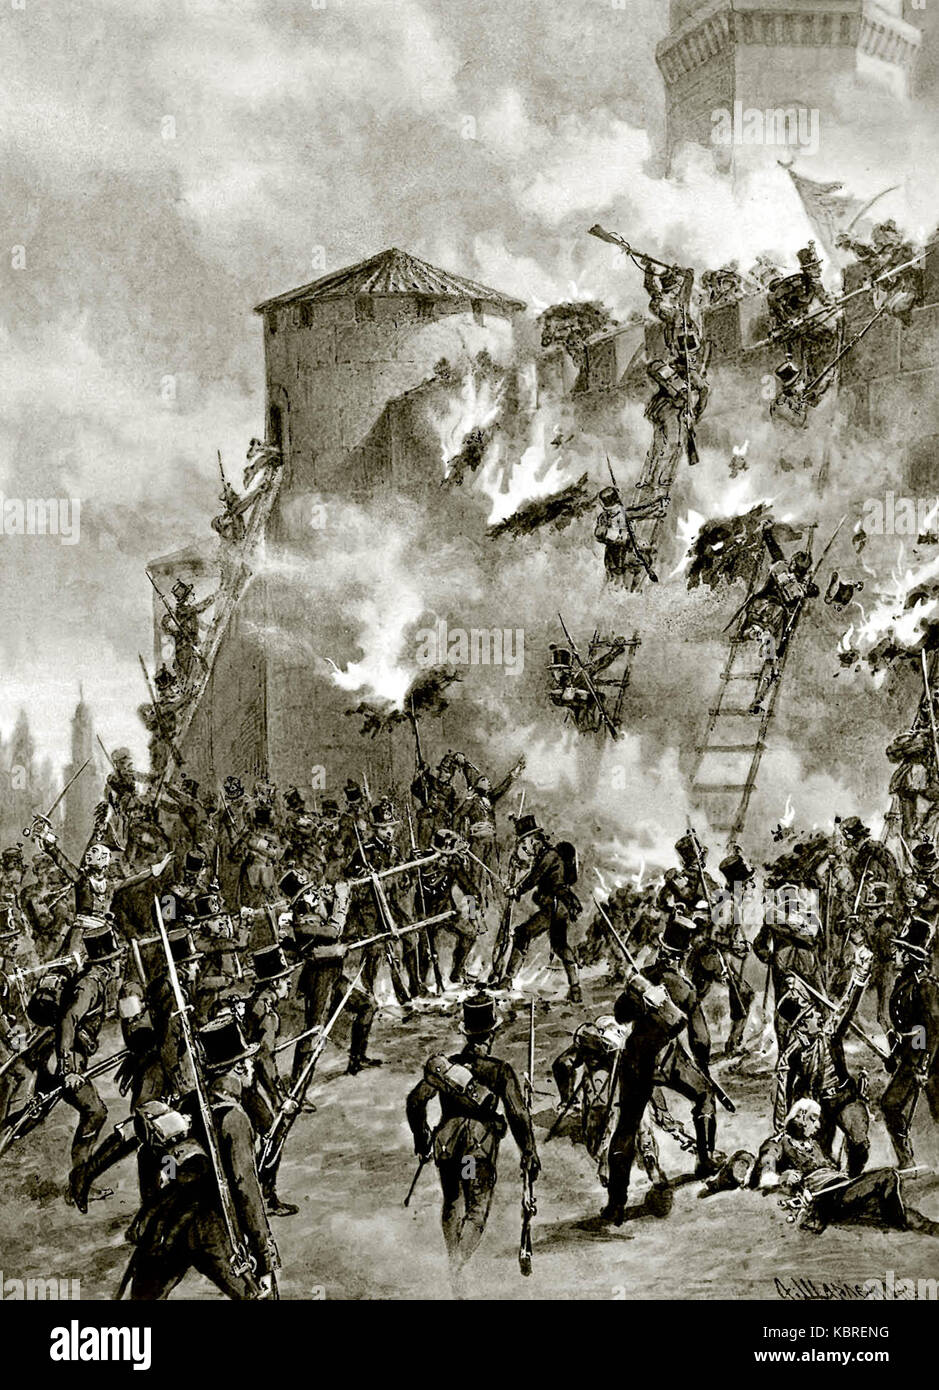 The siege of Ganja Fortress in 1804 during the Russo-Persian War of 1804-1813 by Russian forces under the leadership - Stock Image